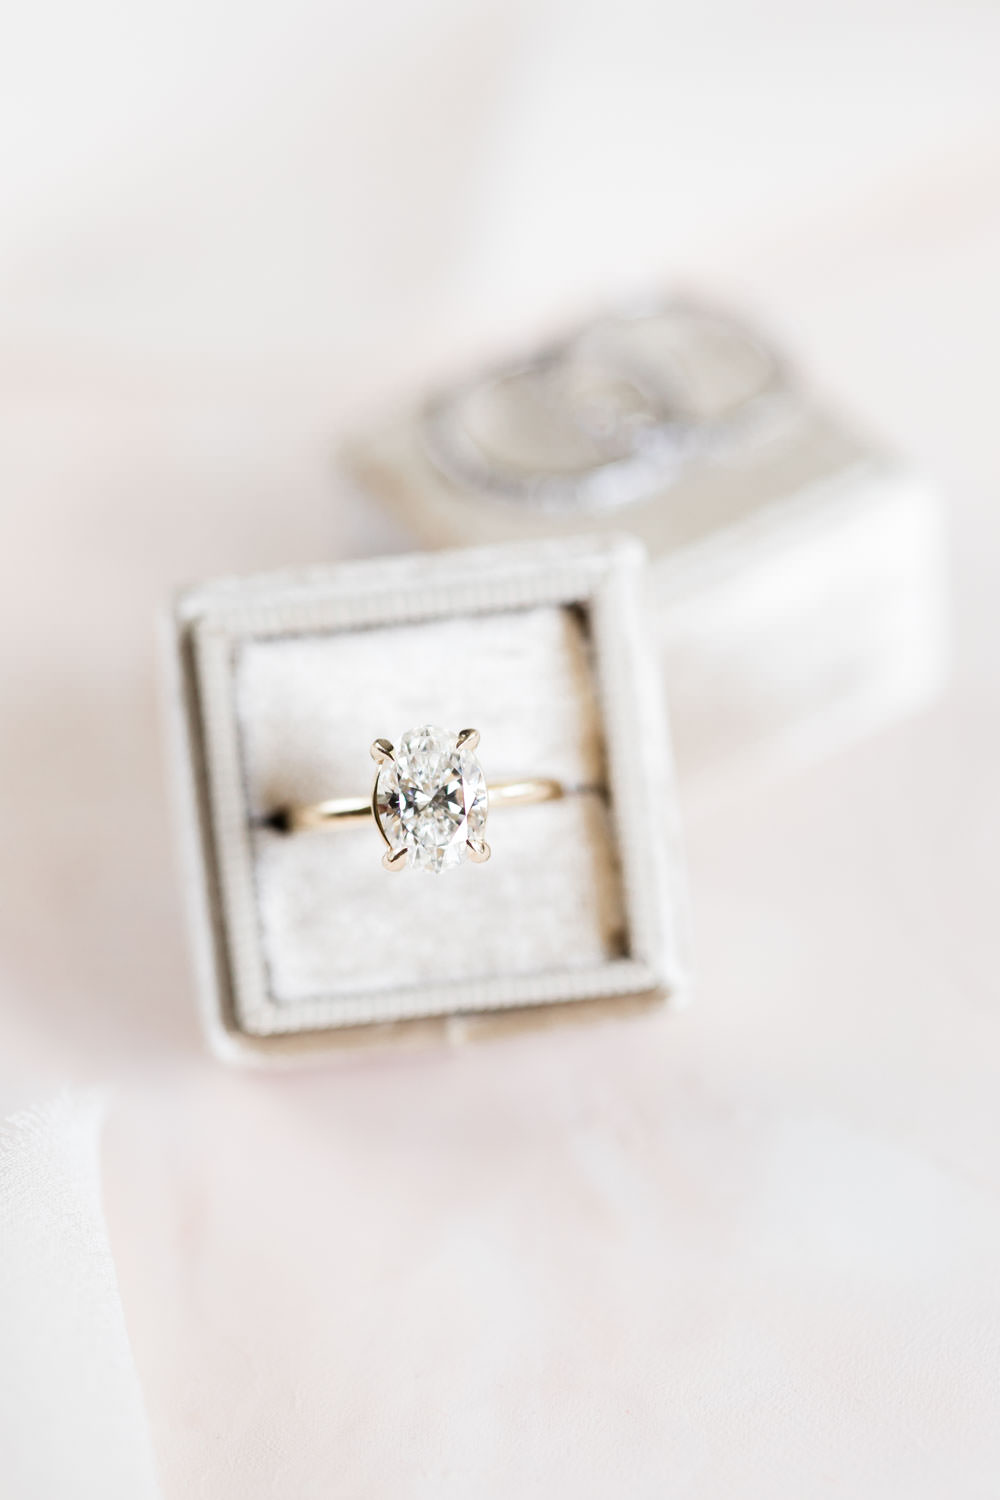 Oval diamond engagement ring in a gray Mrs Box, Cavin Elizabeth Photography